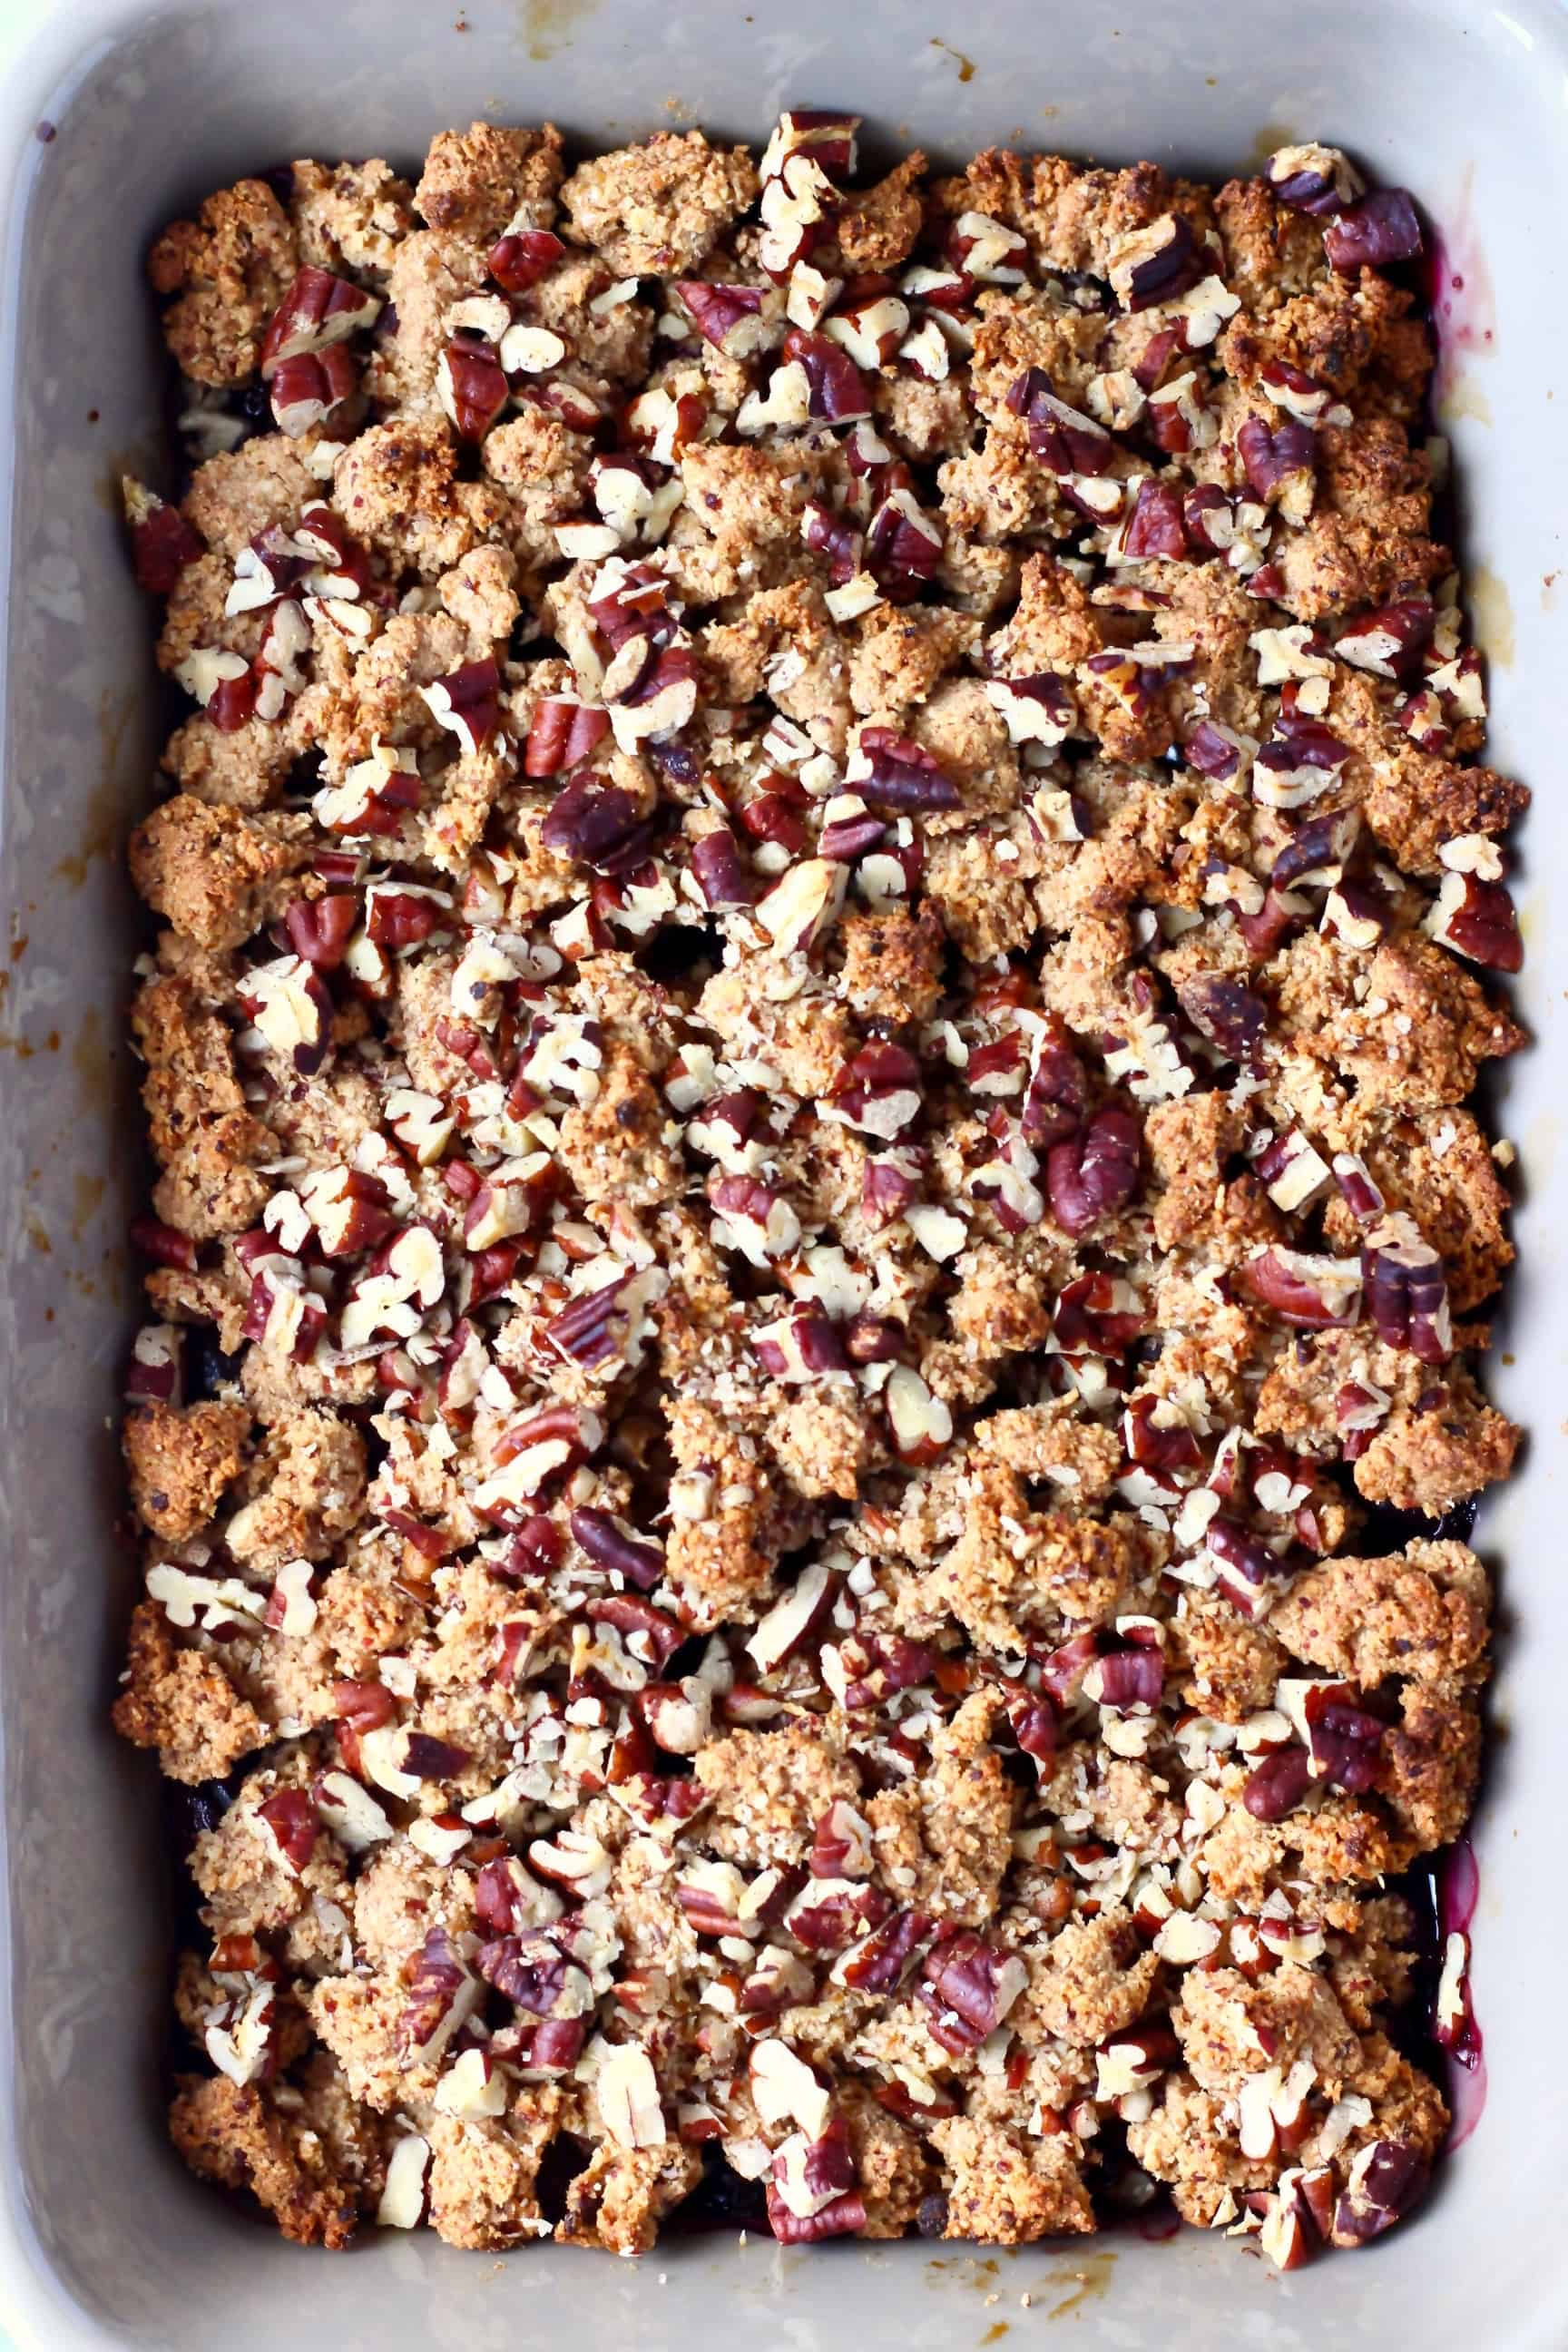 A grey rectangular baking dish with blueberry crisp topped with pecan nuts